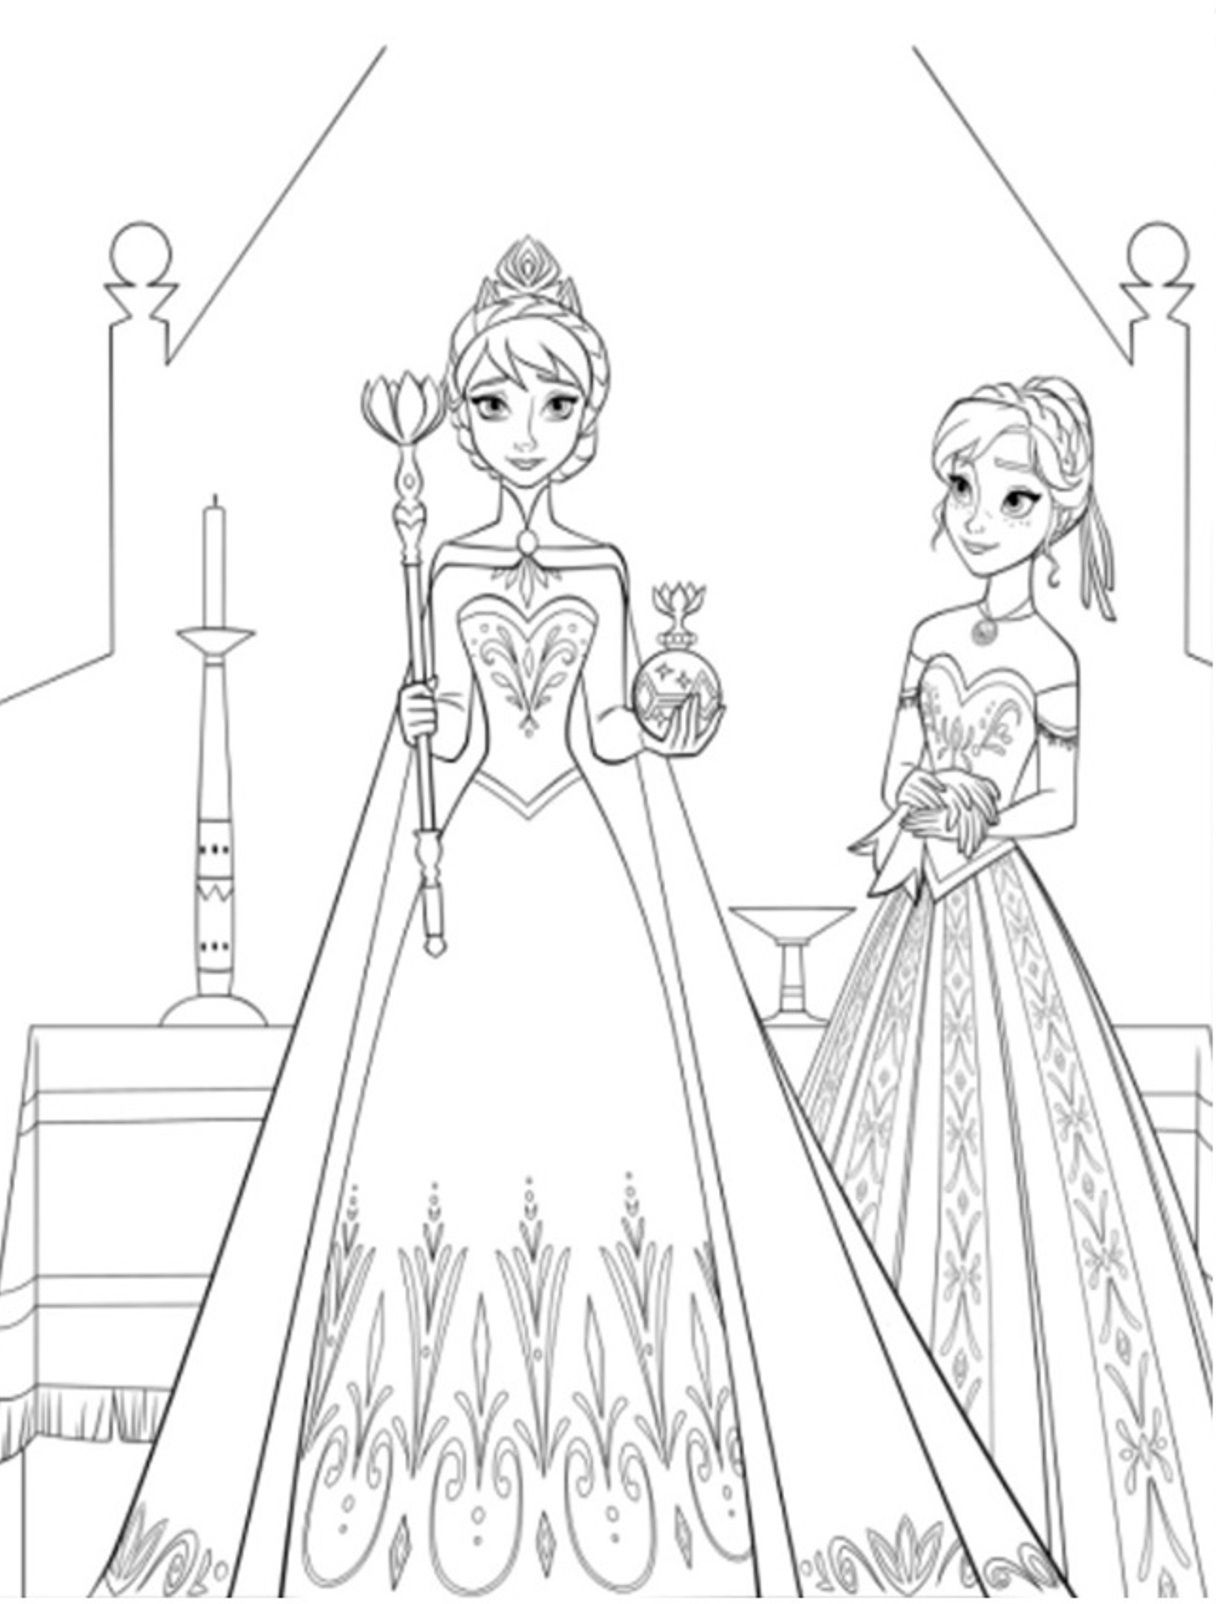 Ausmalbilder Die Eiskönigin Kostenlos : Disney Frozen Anna Coloring Page S Frozen Coloring Pages Anna And